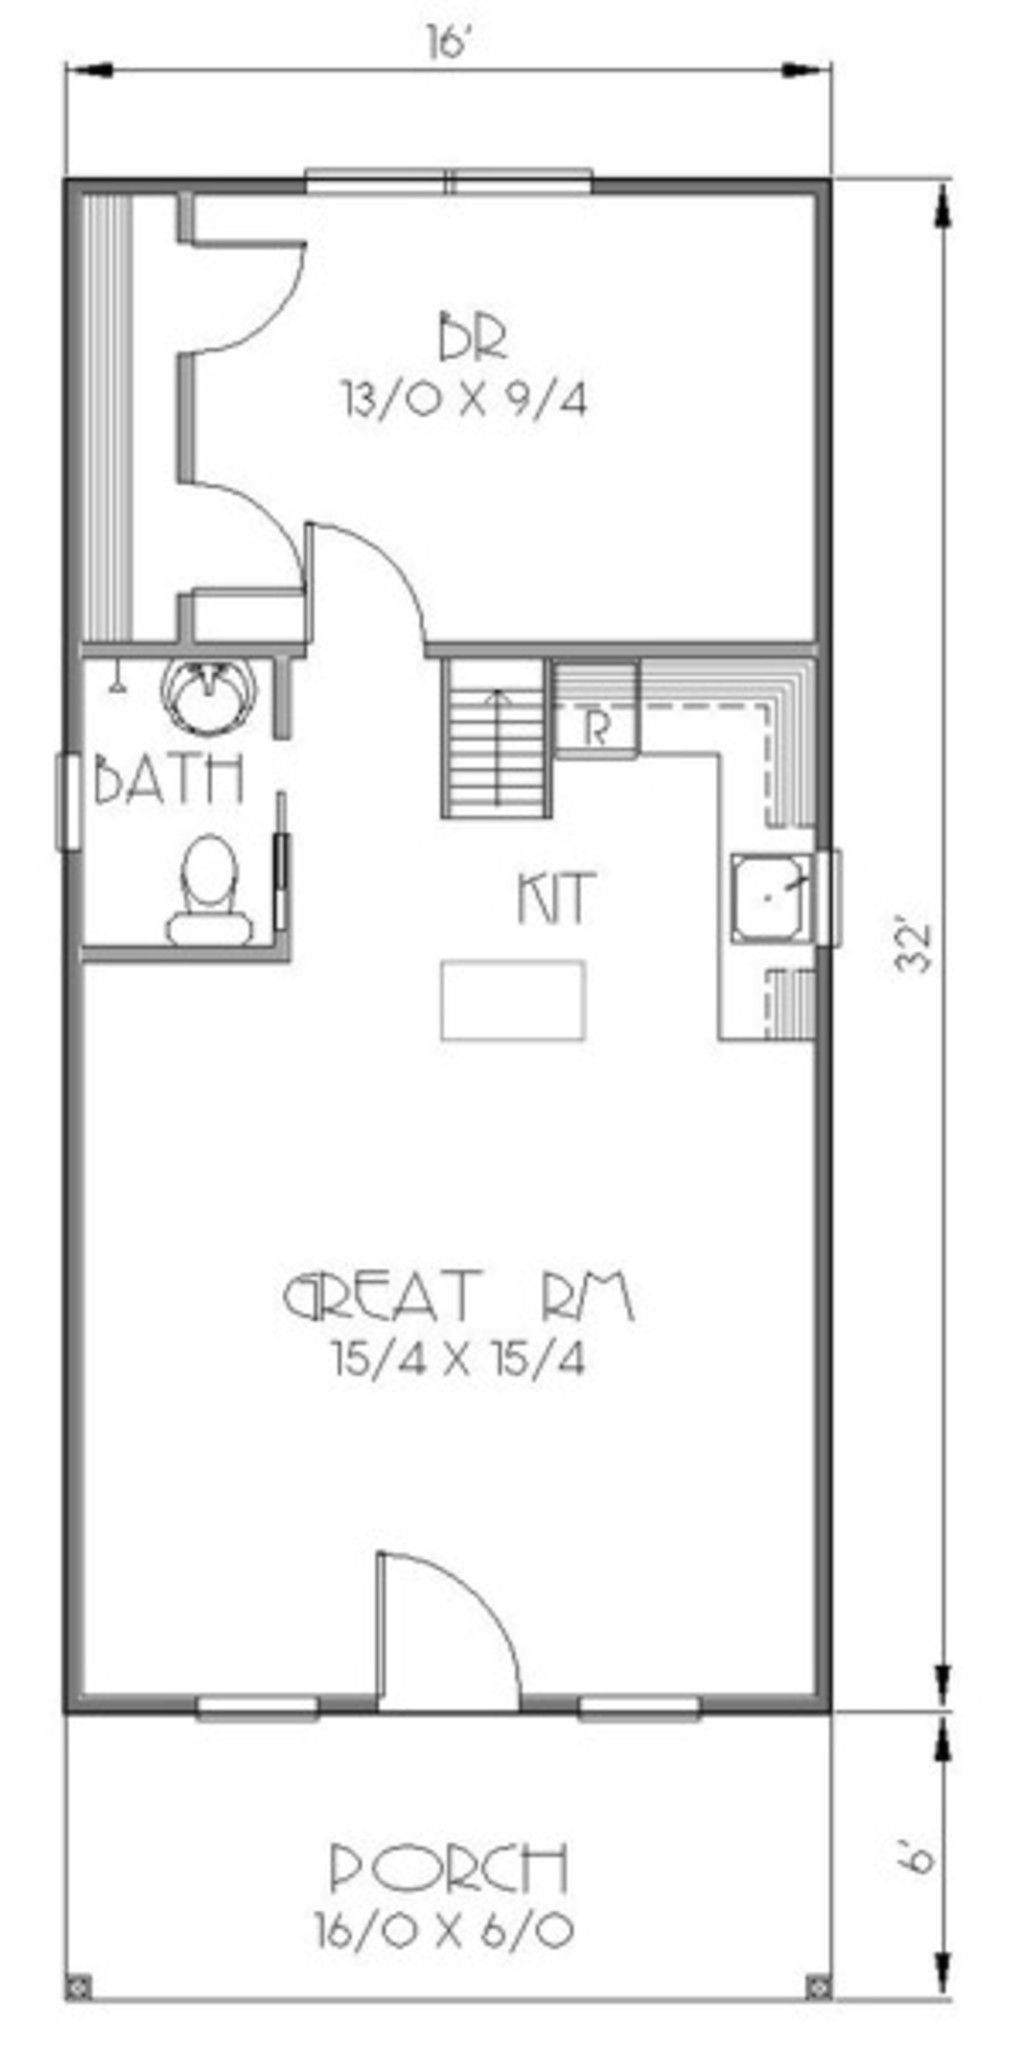 Traditional Style House Plan 1 Beds 00 Baths 812 Sq Ft 423 Stunning 12x28 Cabin Floor Plans Cabin Floor Plans Tiny House Floor Plans Bungalow Style House Plans